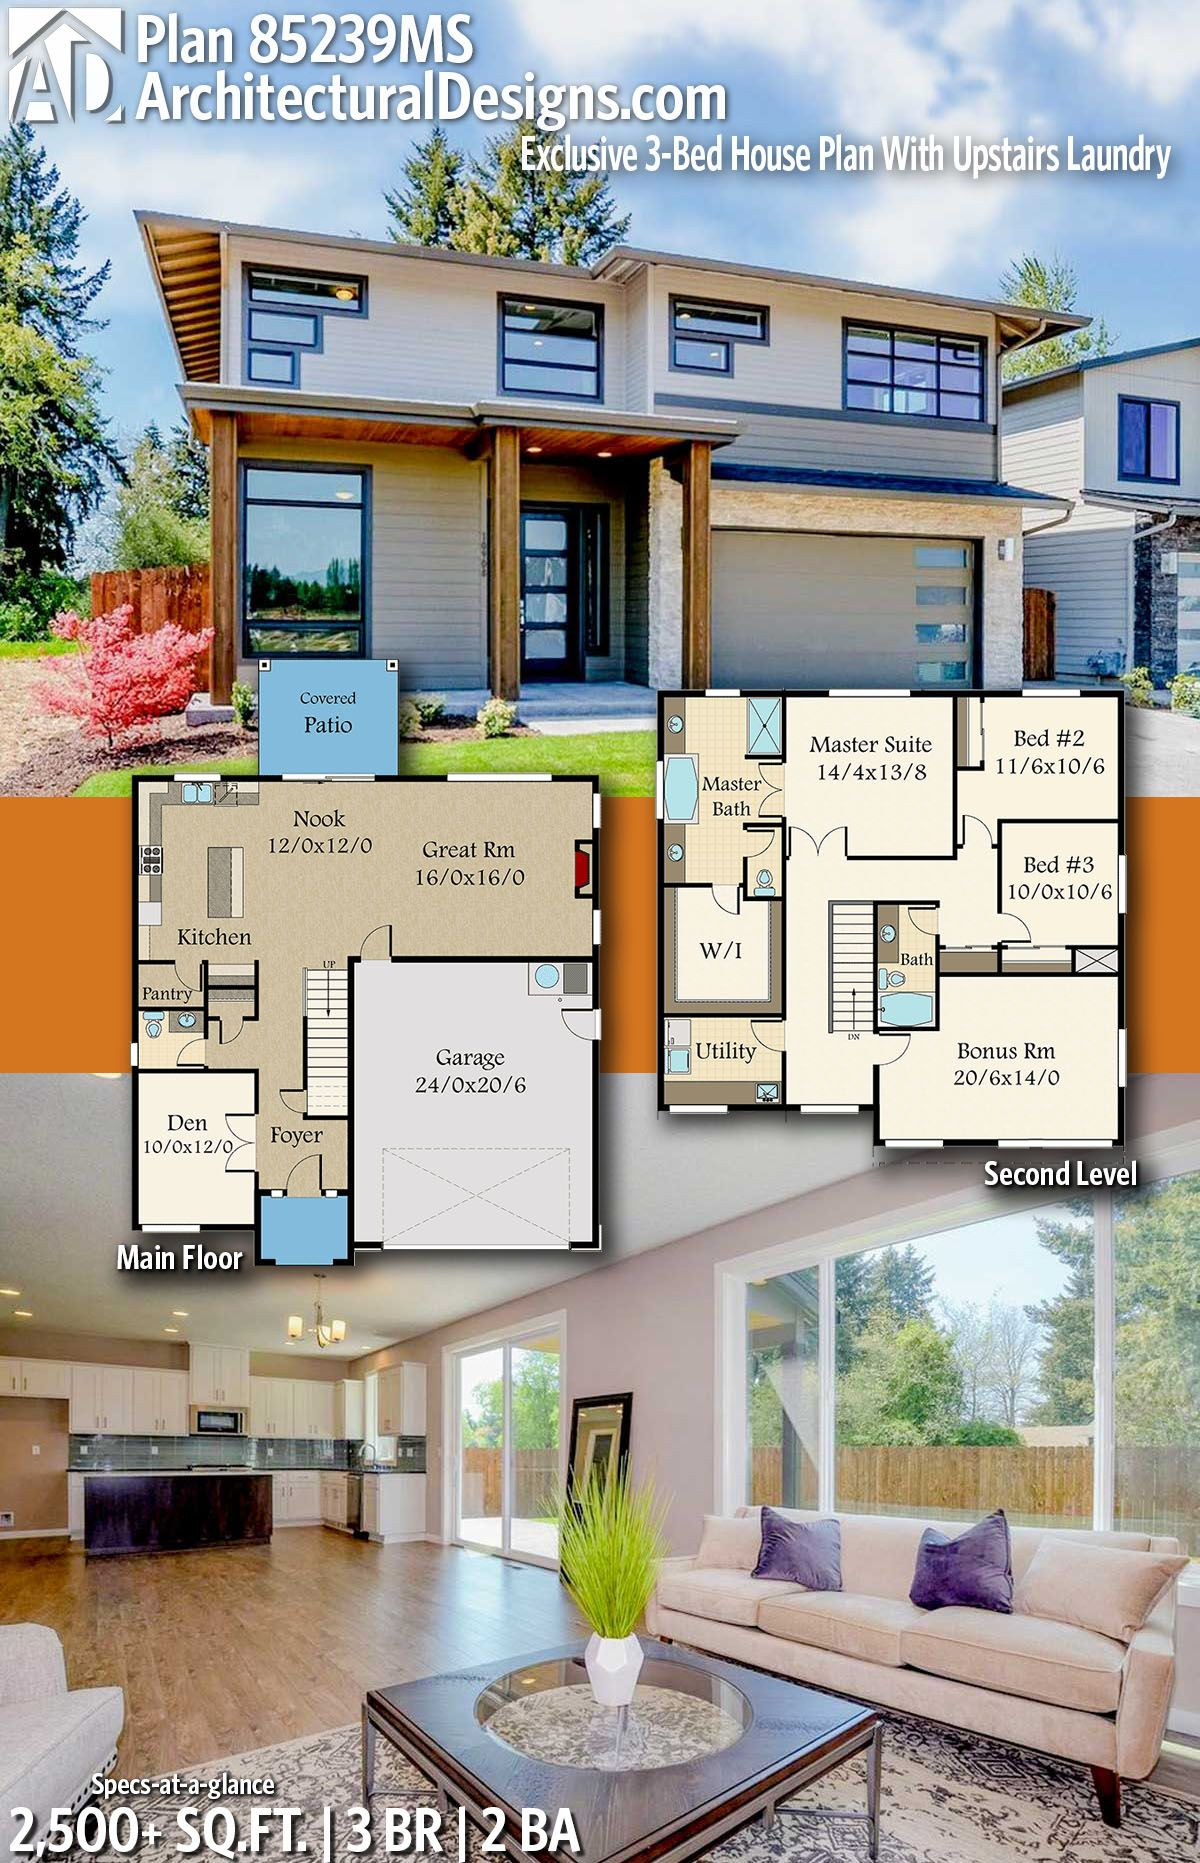 Plan 85239ms Exclusive 3 Bed House Plan With Upstairs Laundry Modern House Plans House Plans Farmhouse House Plans